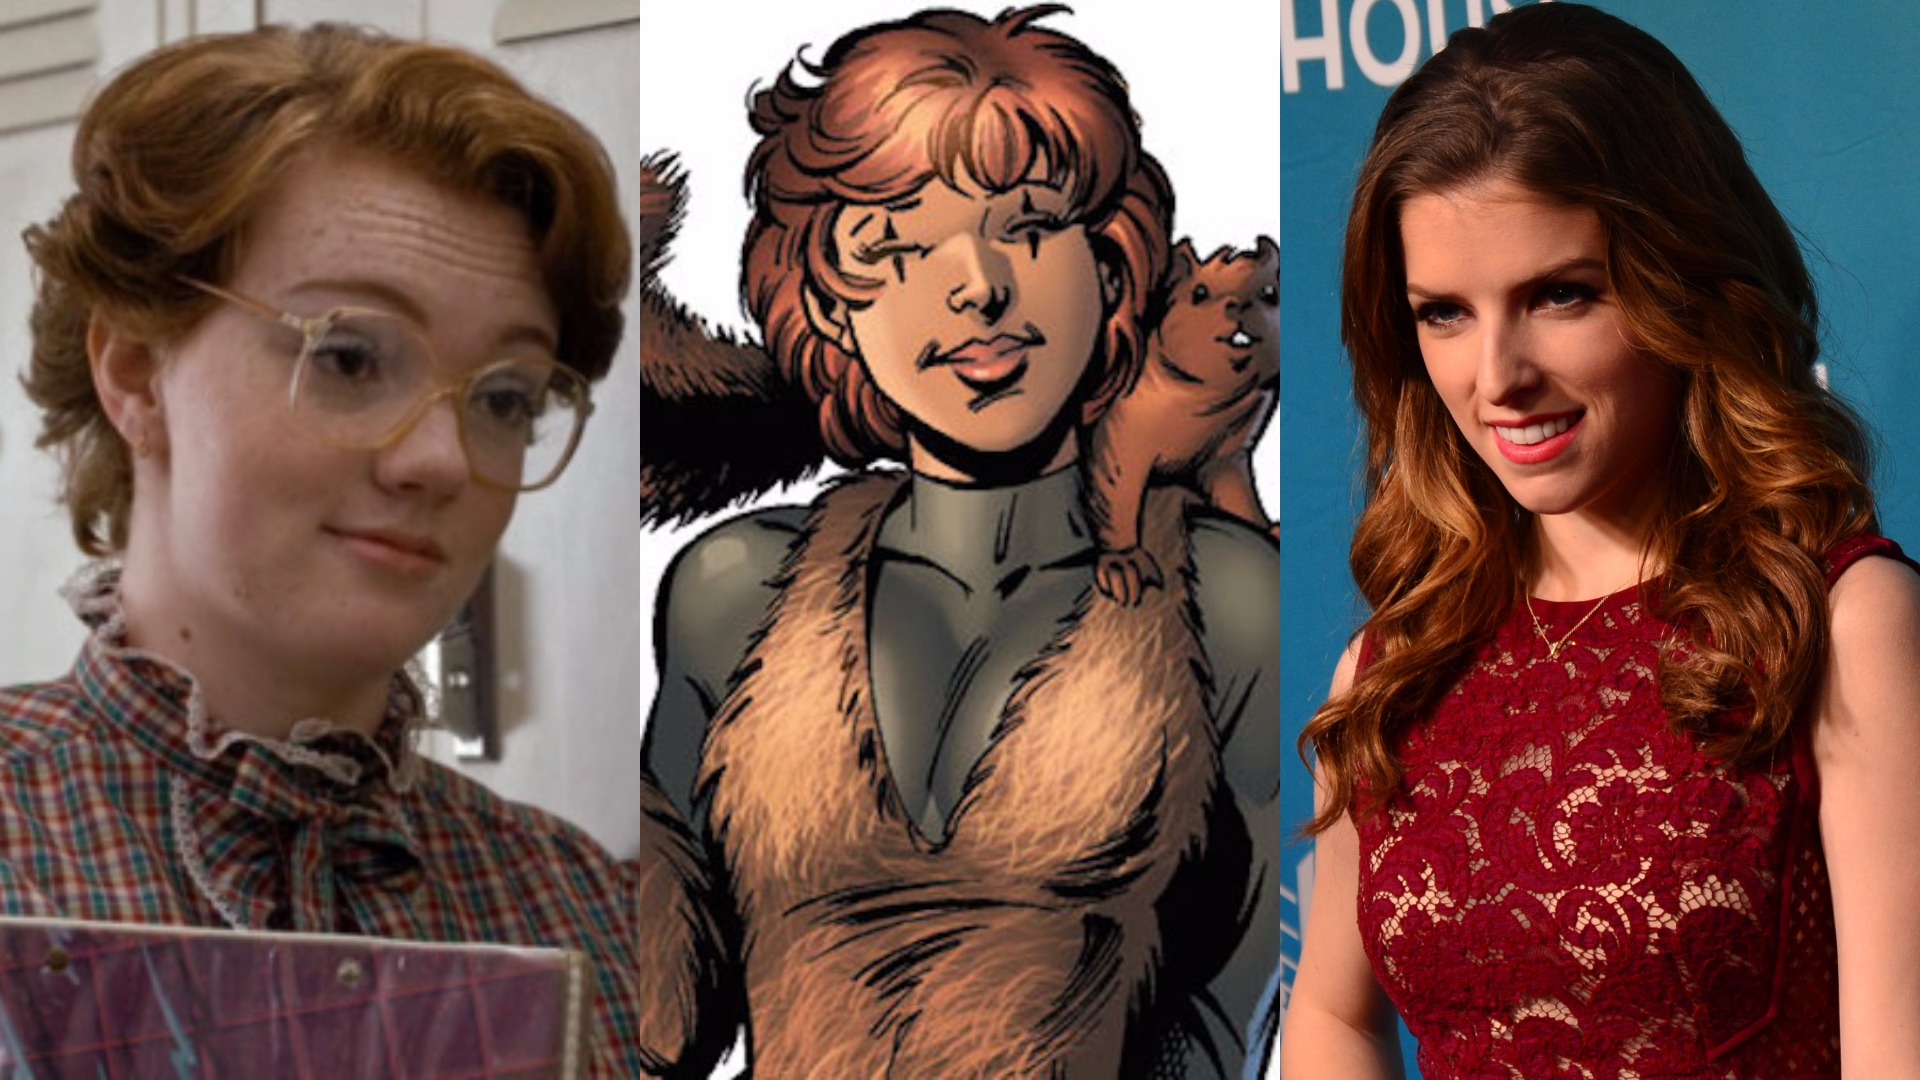 Edgar Wright wants Anna Kendrick for Squirrel Girl. But there's one other actress lobbying for the role...